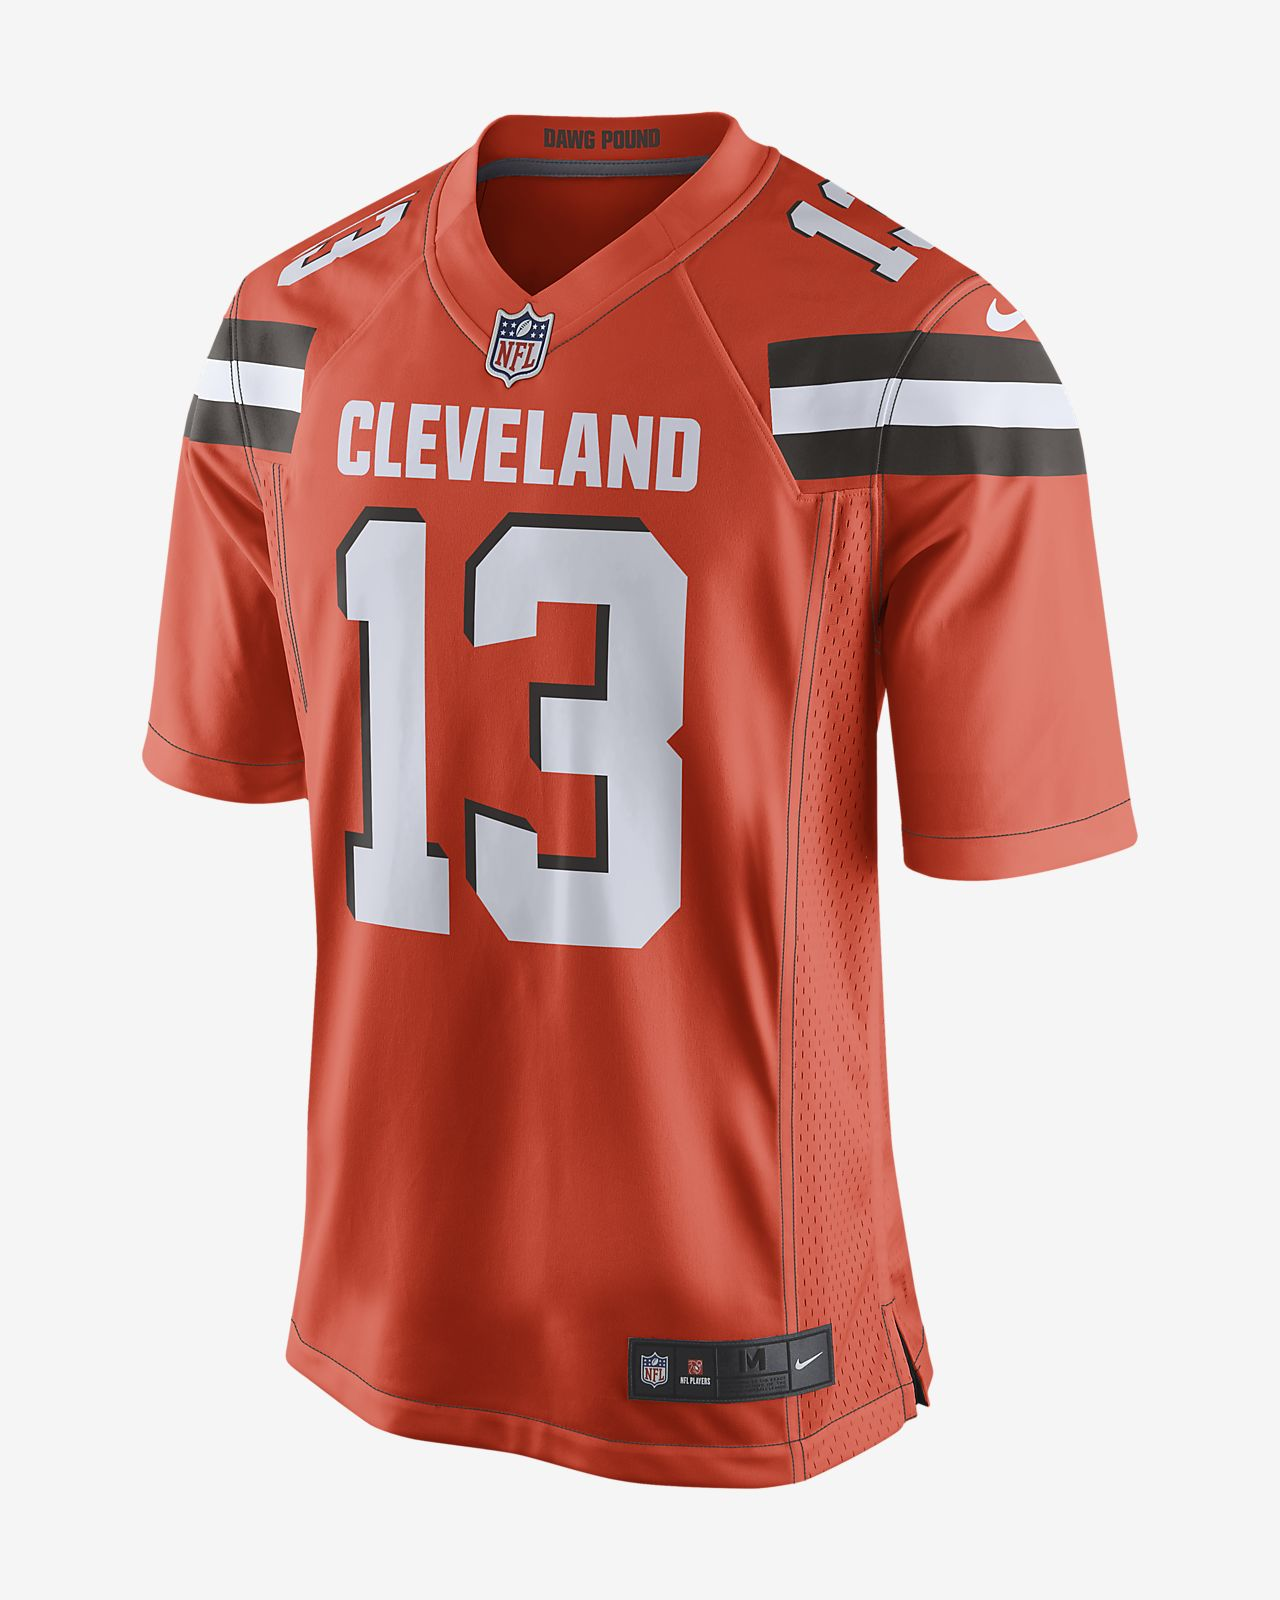 8795f7c6 NFL Cleveland Browns (Odell Beckham Jr.) Men's Game Football Jersey